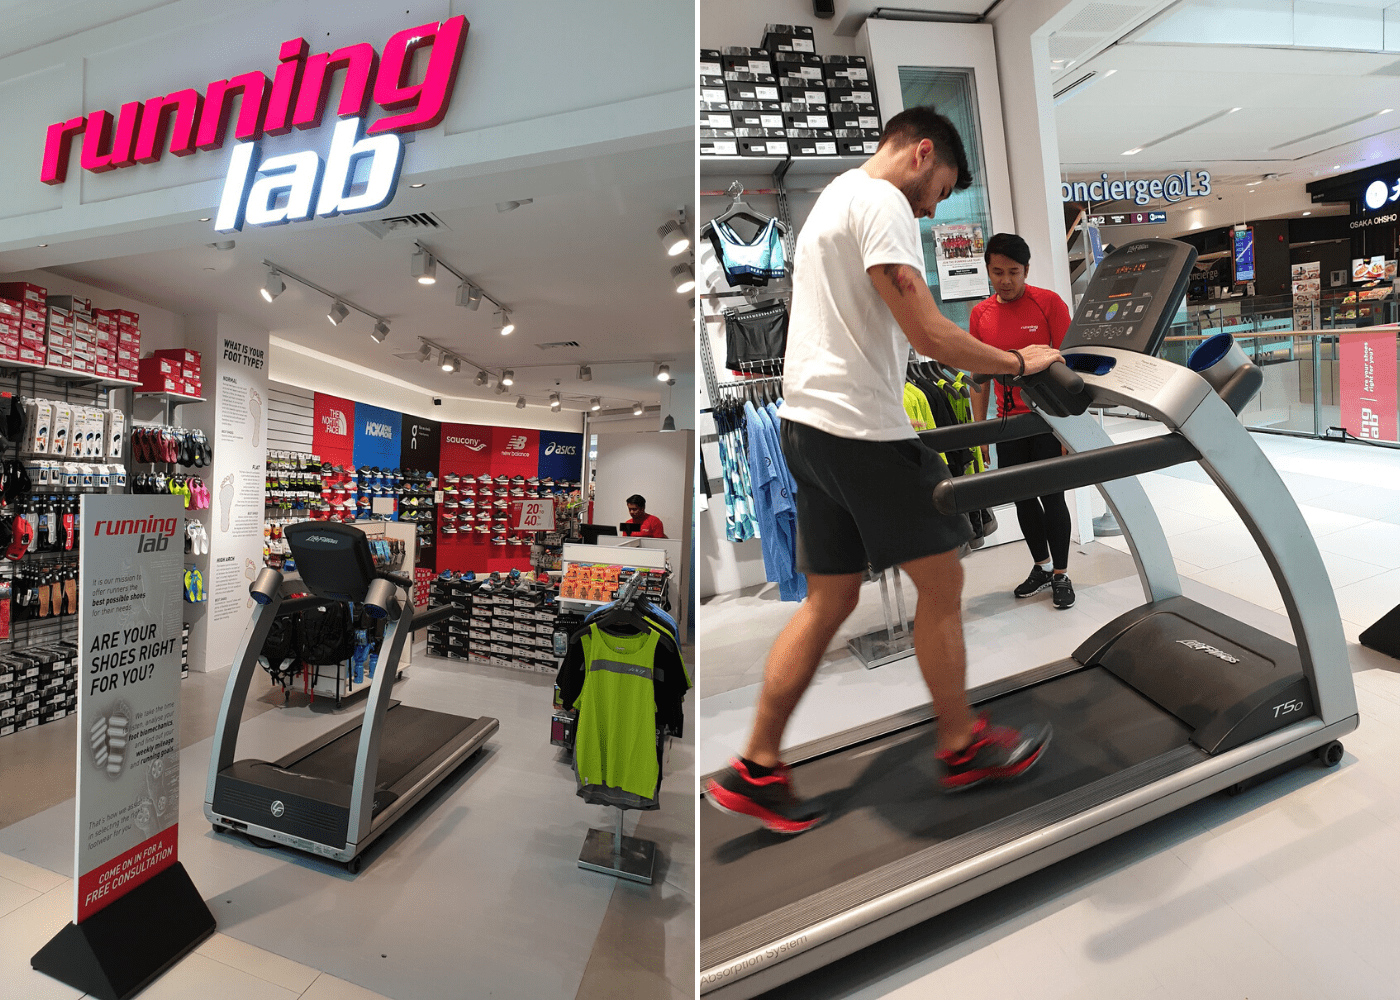 Running shoes in Singapore: Running Lab